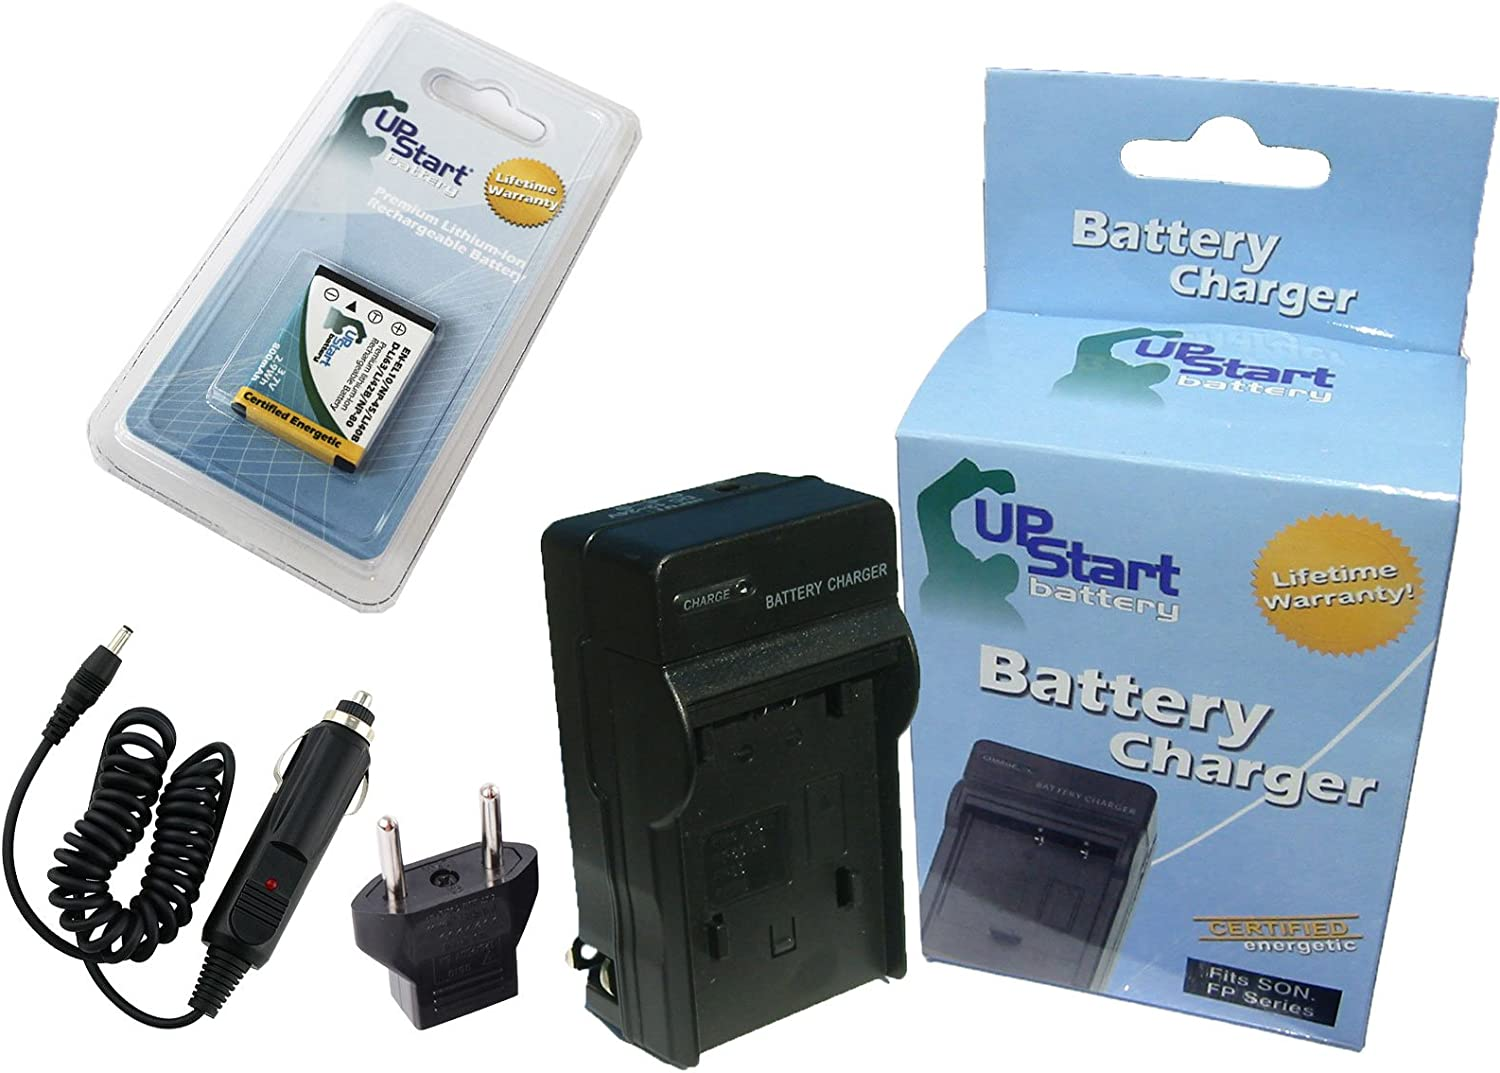 Compatible with Olympus LI-40B LI-42B Digital Camera Batteries and Chargers Replacement for Olympus VH-210 Battery and Charger with Car Plug and EU Adapter 800mAh 3.7V Lithium-Ion